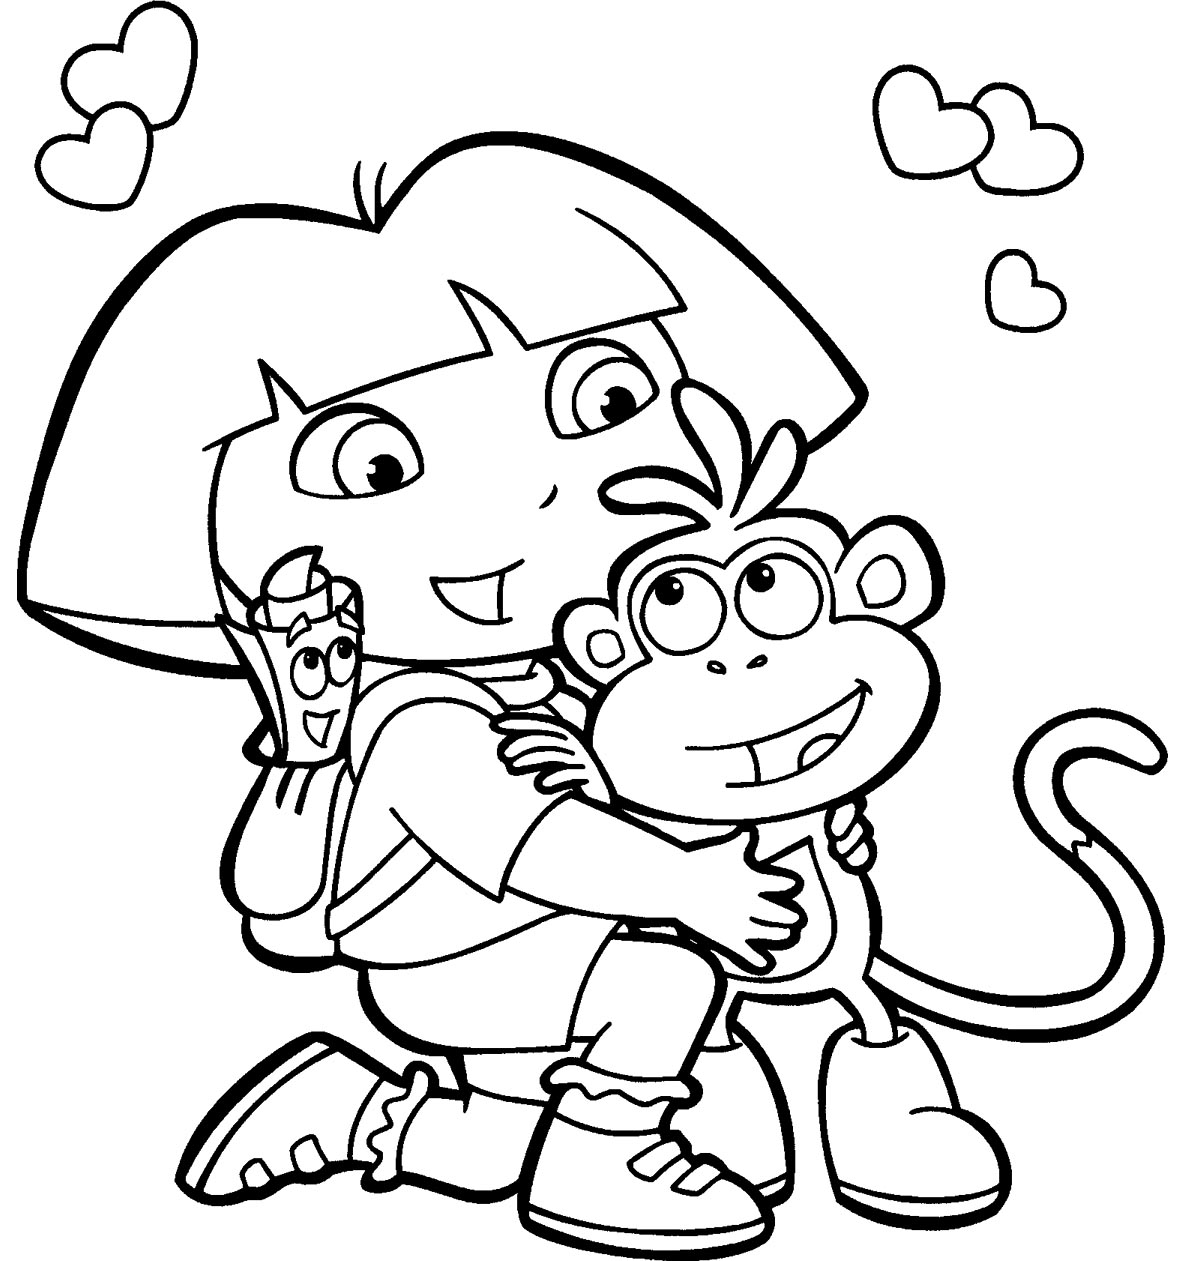 1200x1261 Plain Cute Scarecrow Coloring Pages Concerning Amazing Article